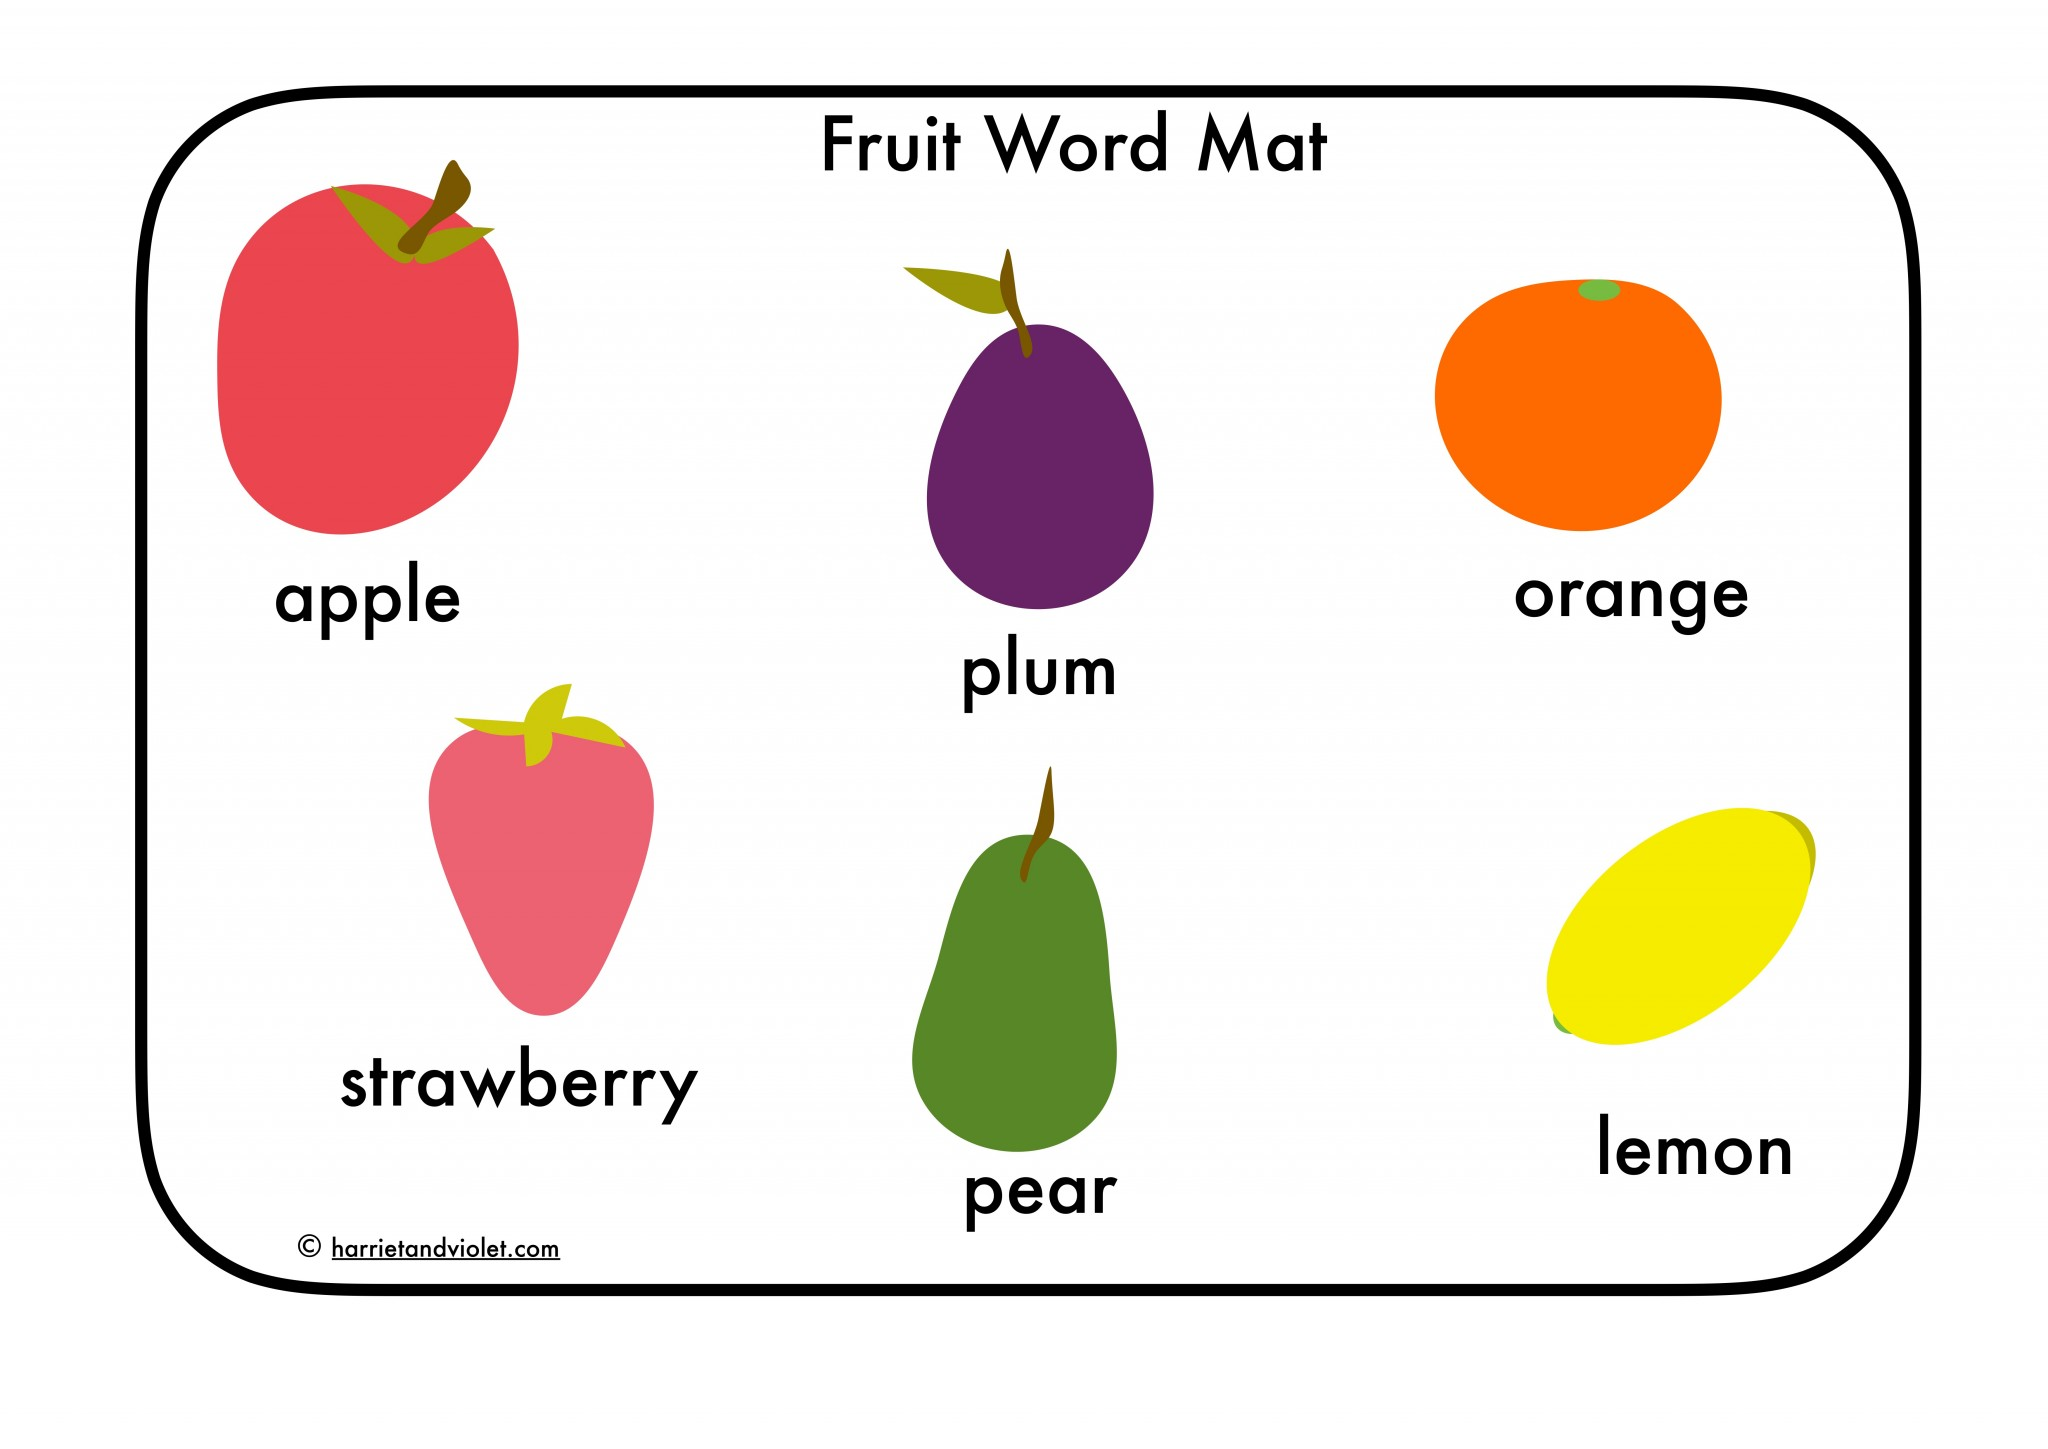 fruit-word-mat-2